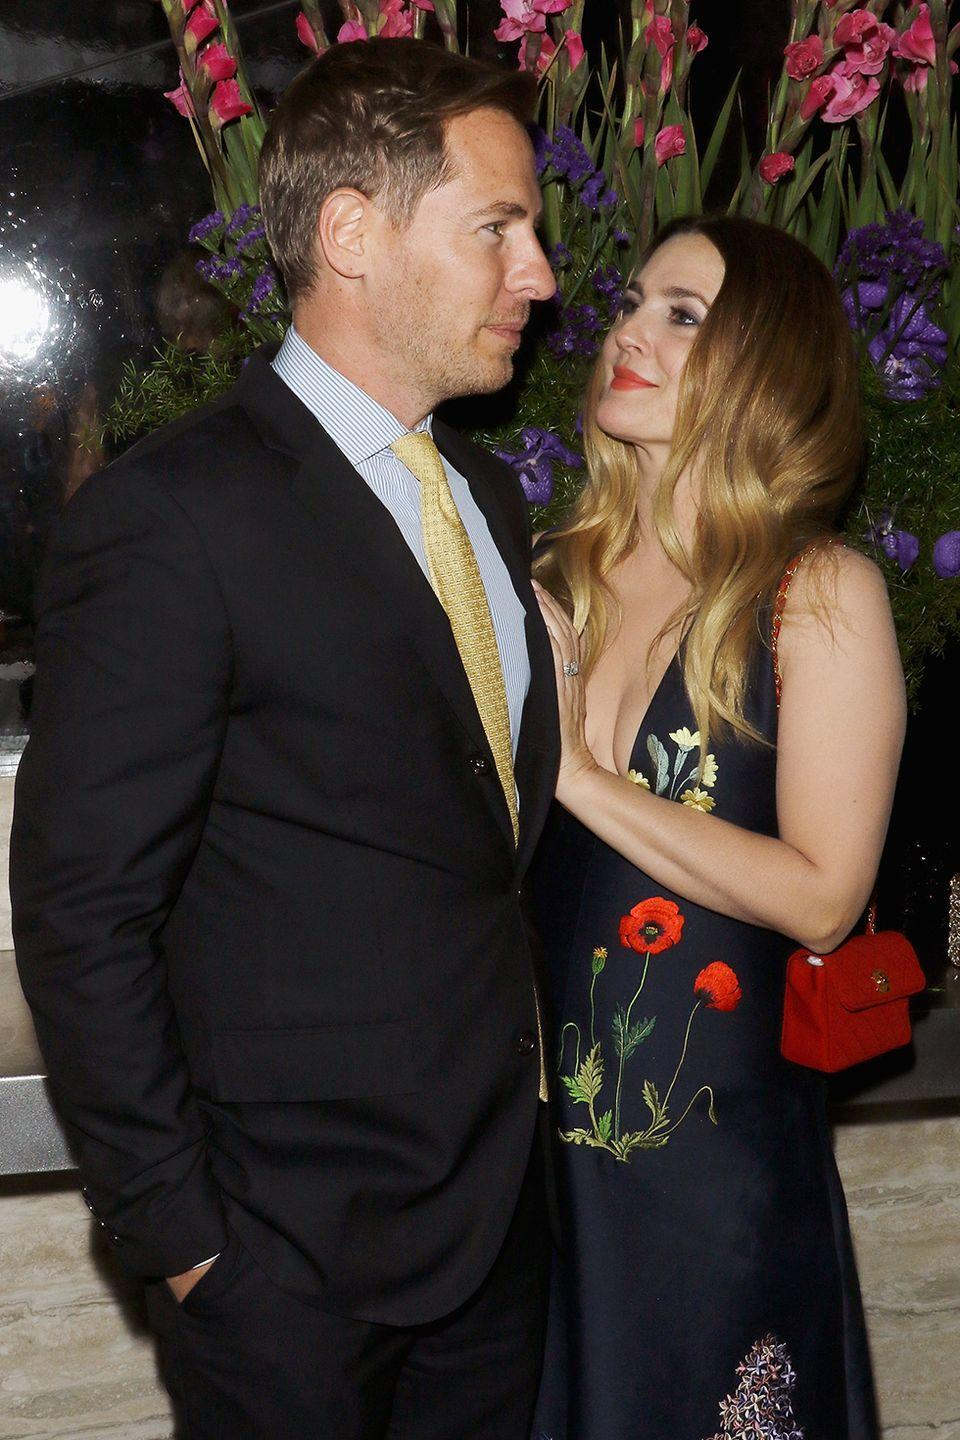 "<p>The duo dated for just under a year before getting engaged in 2012. It's—shall we say—a habit for her? She got married in 1994 after six weeks of dating bar owner Jeremy Thomas and had a quickie marriage to Tom Green in 2001, details the <em><a class=""link rapid-noclick-resp"" href=""http://www.nydailynews.com/entertainment/gossip/drew-barrymore-kopelman-engaged-year-article-1.1001443"" rel=""nofollow noopener"" target=""_blank"" data-ylk=""slk:Daily News"">Daily News</a></em>. Sadly, Drew and Will divorced in 2016.</p>"